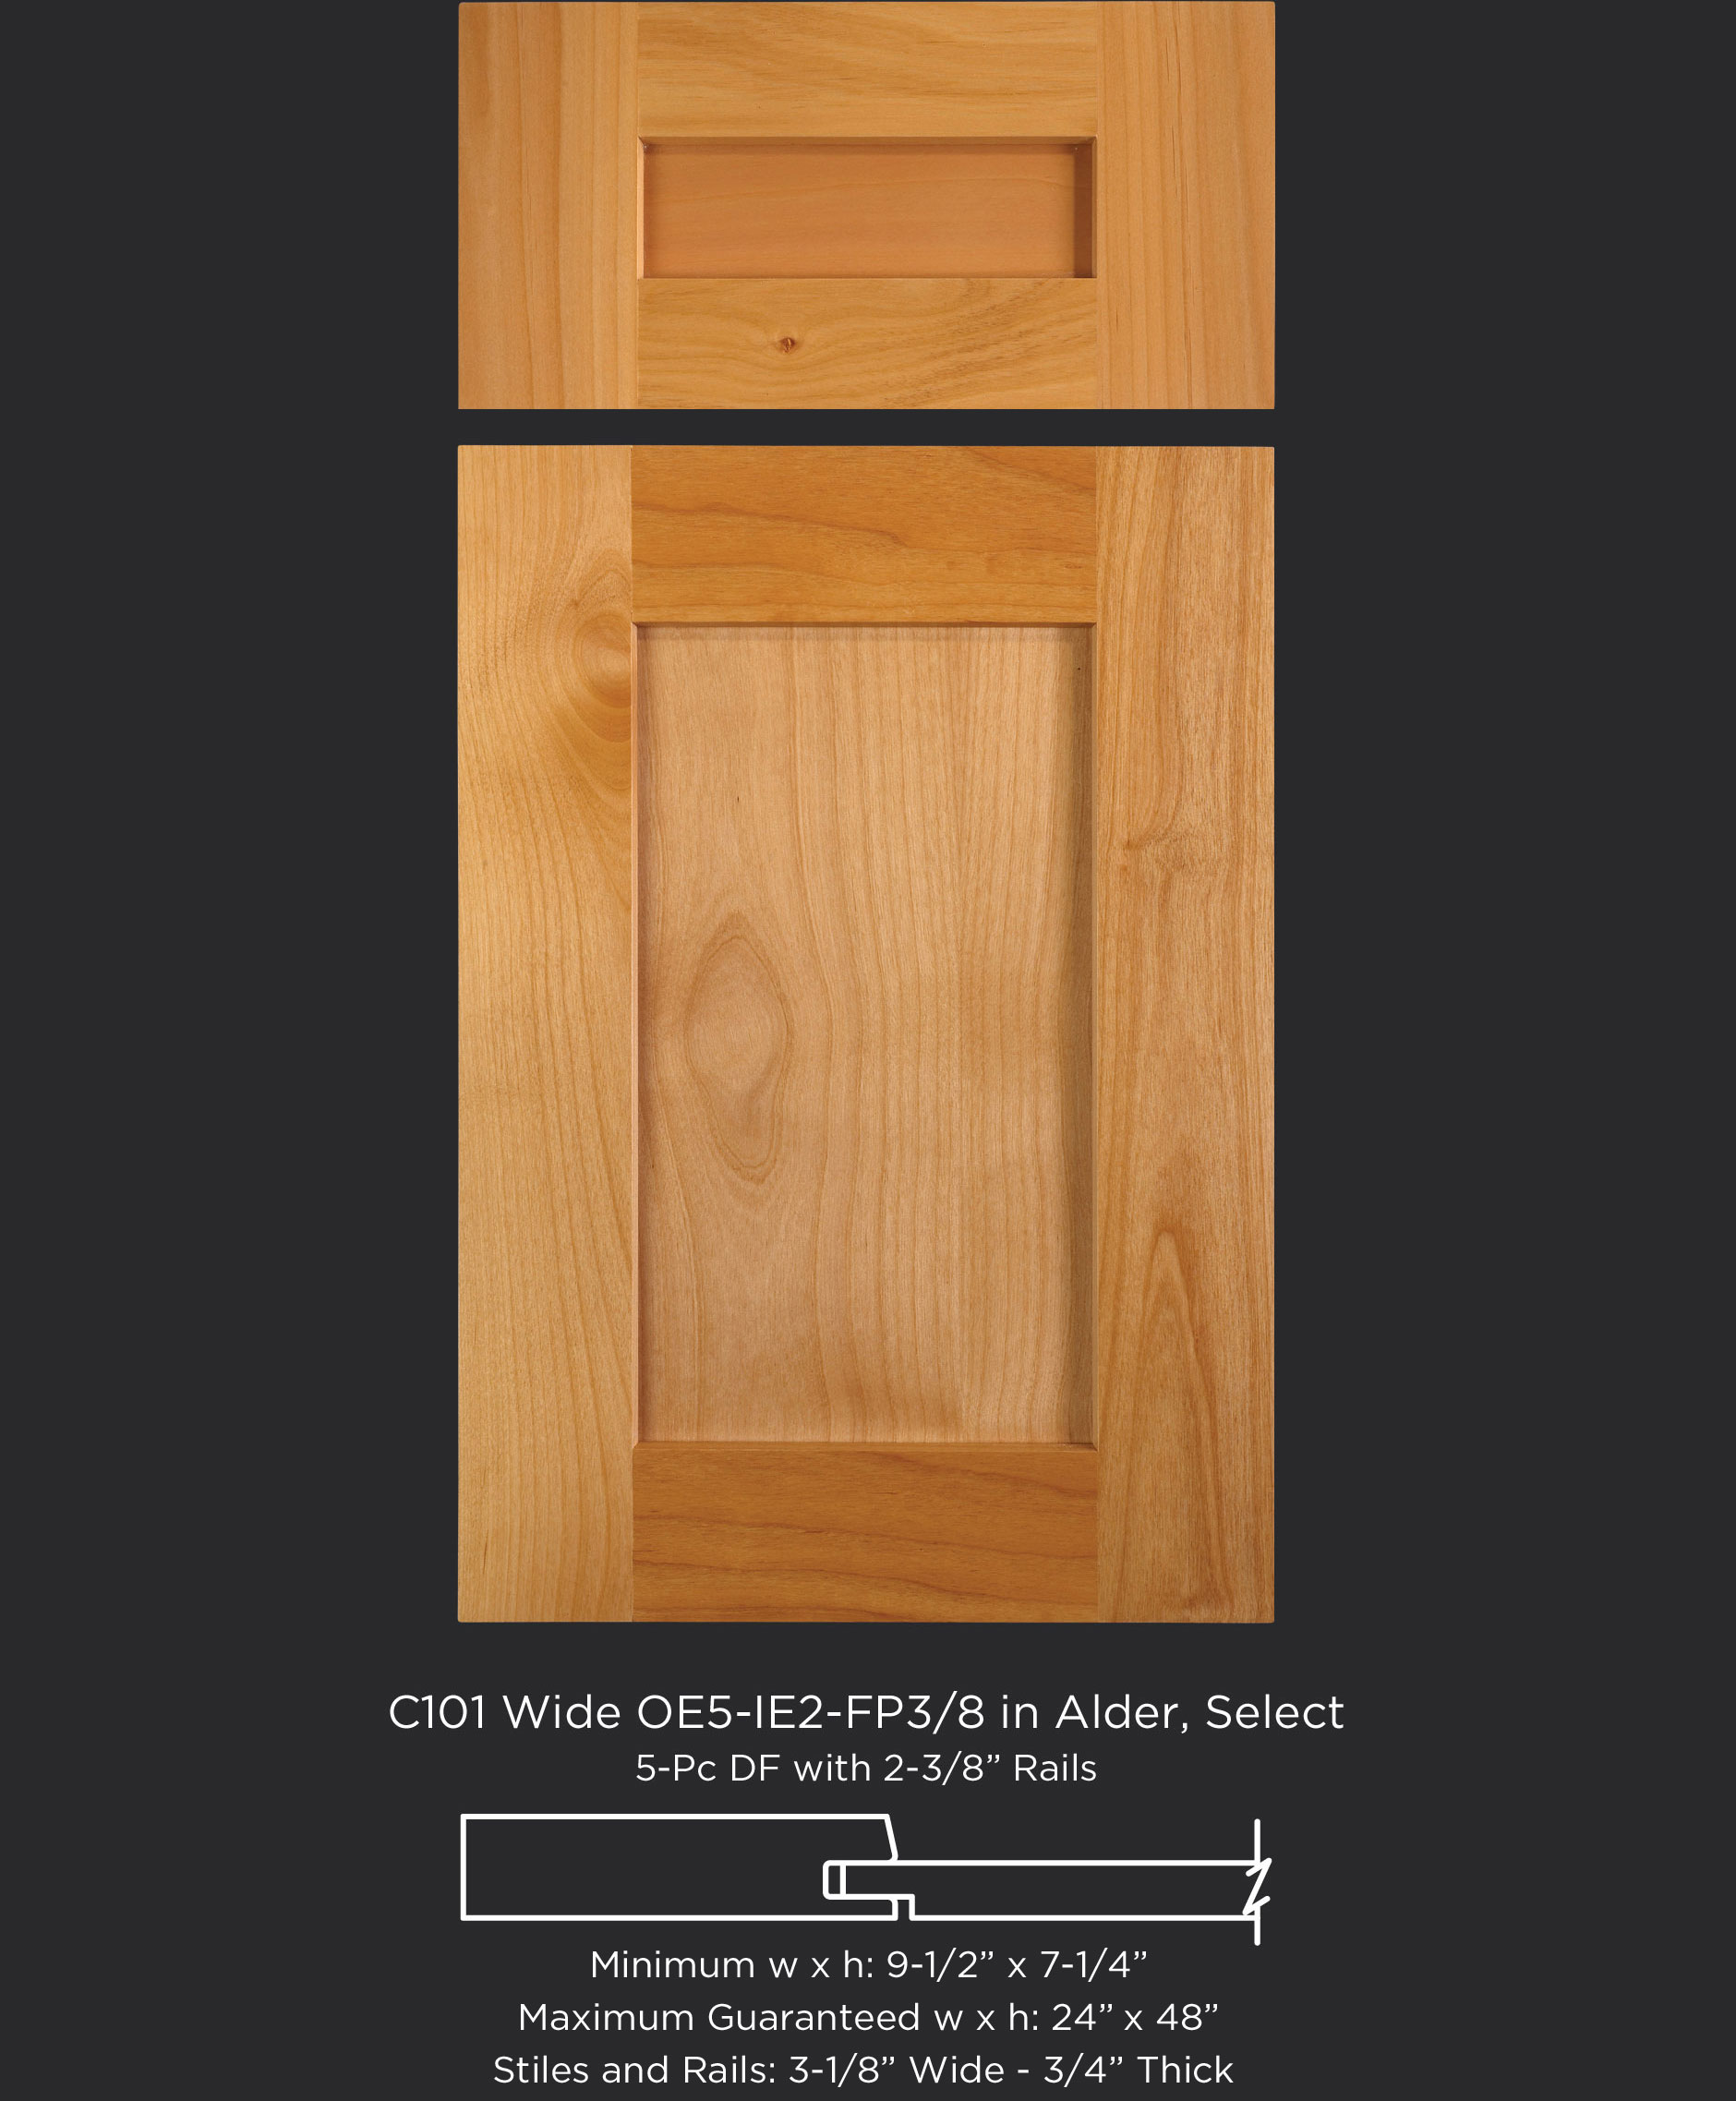 Cope and Stick Cabinet Door C101 Wide OE5-IE5-FP3/8 Alder, Select and 5-piece drawer front